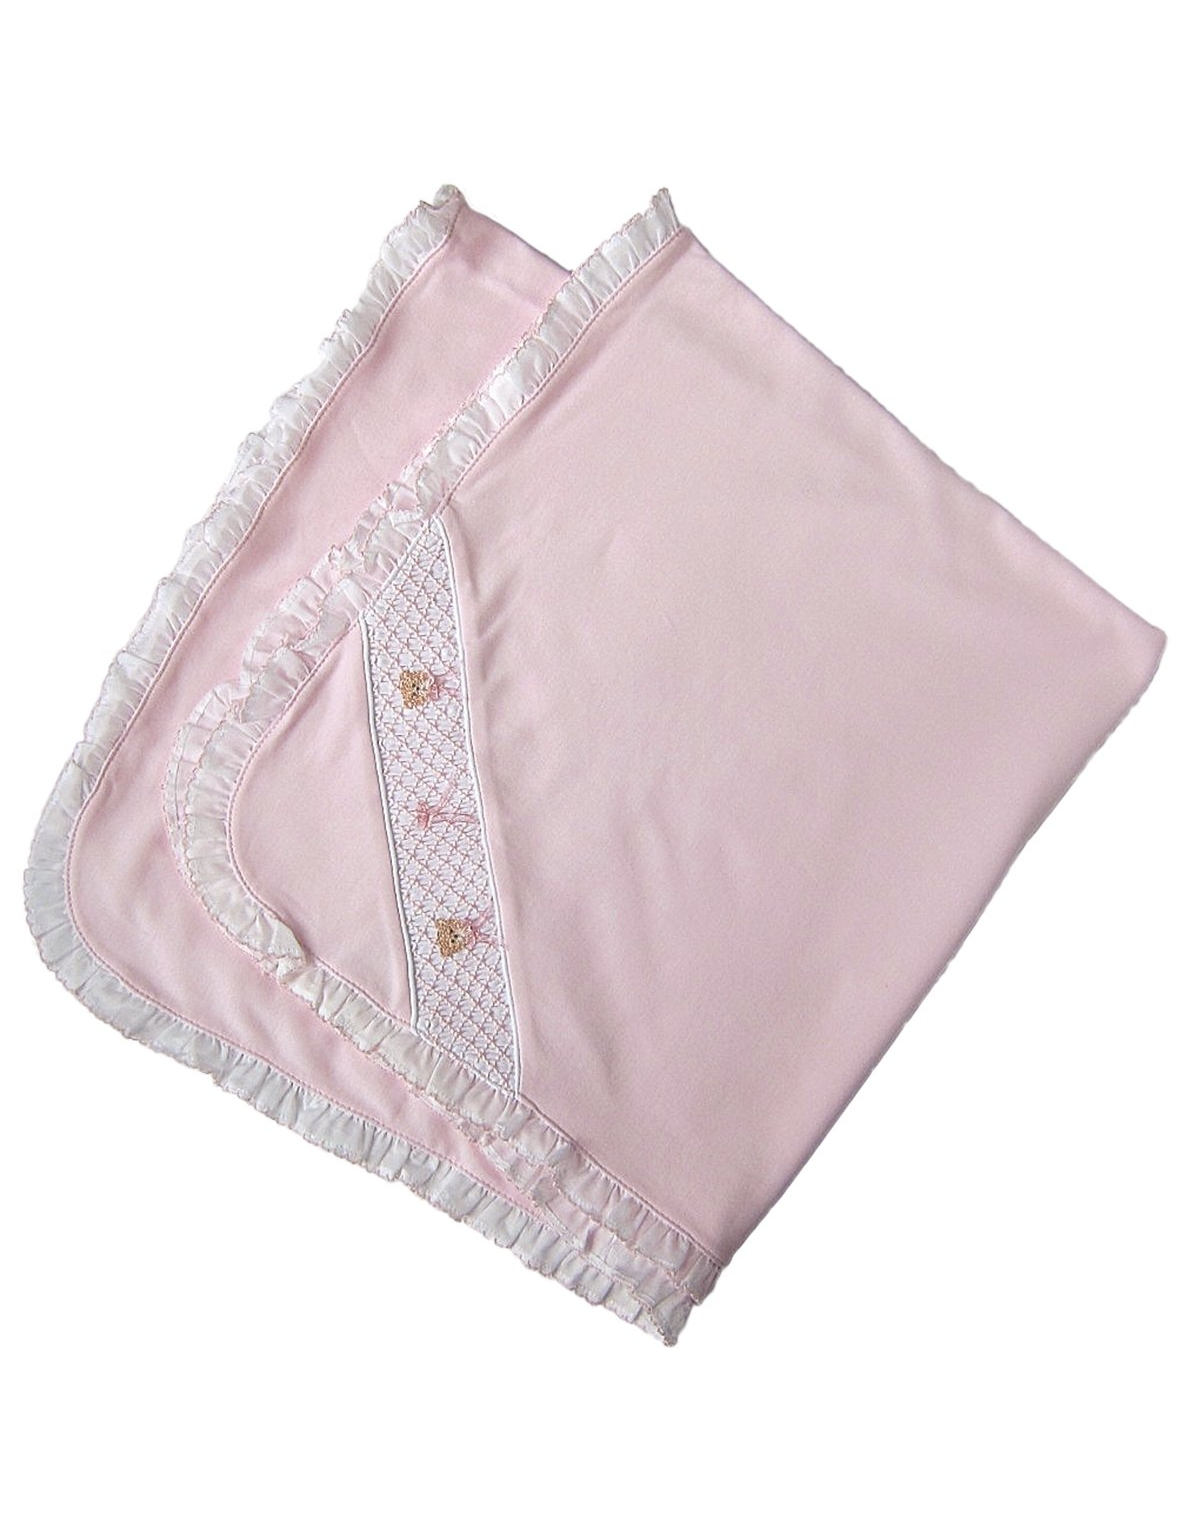 Smocked Baby Blankets